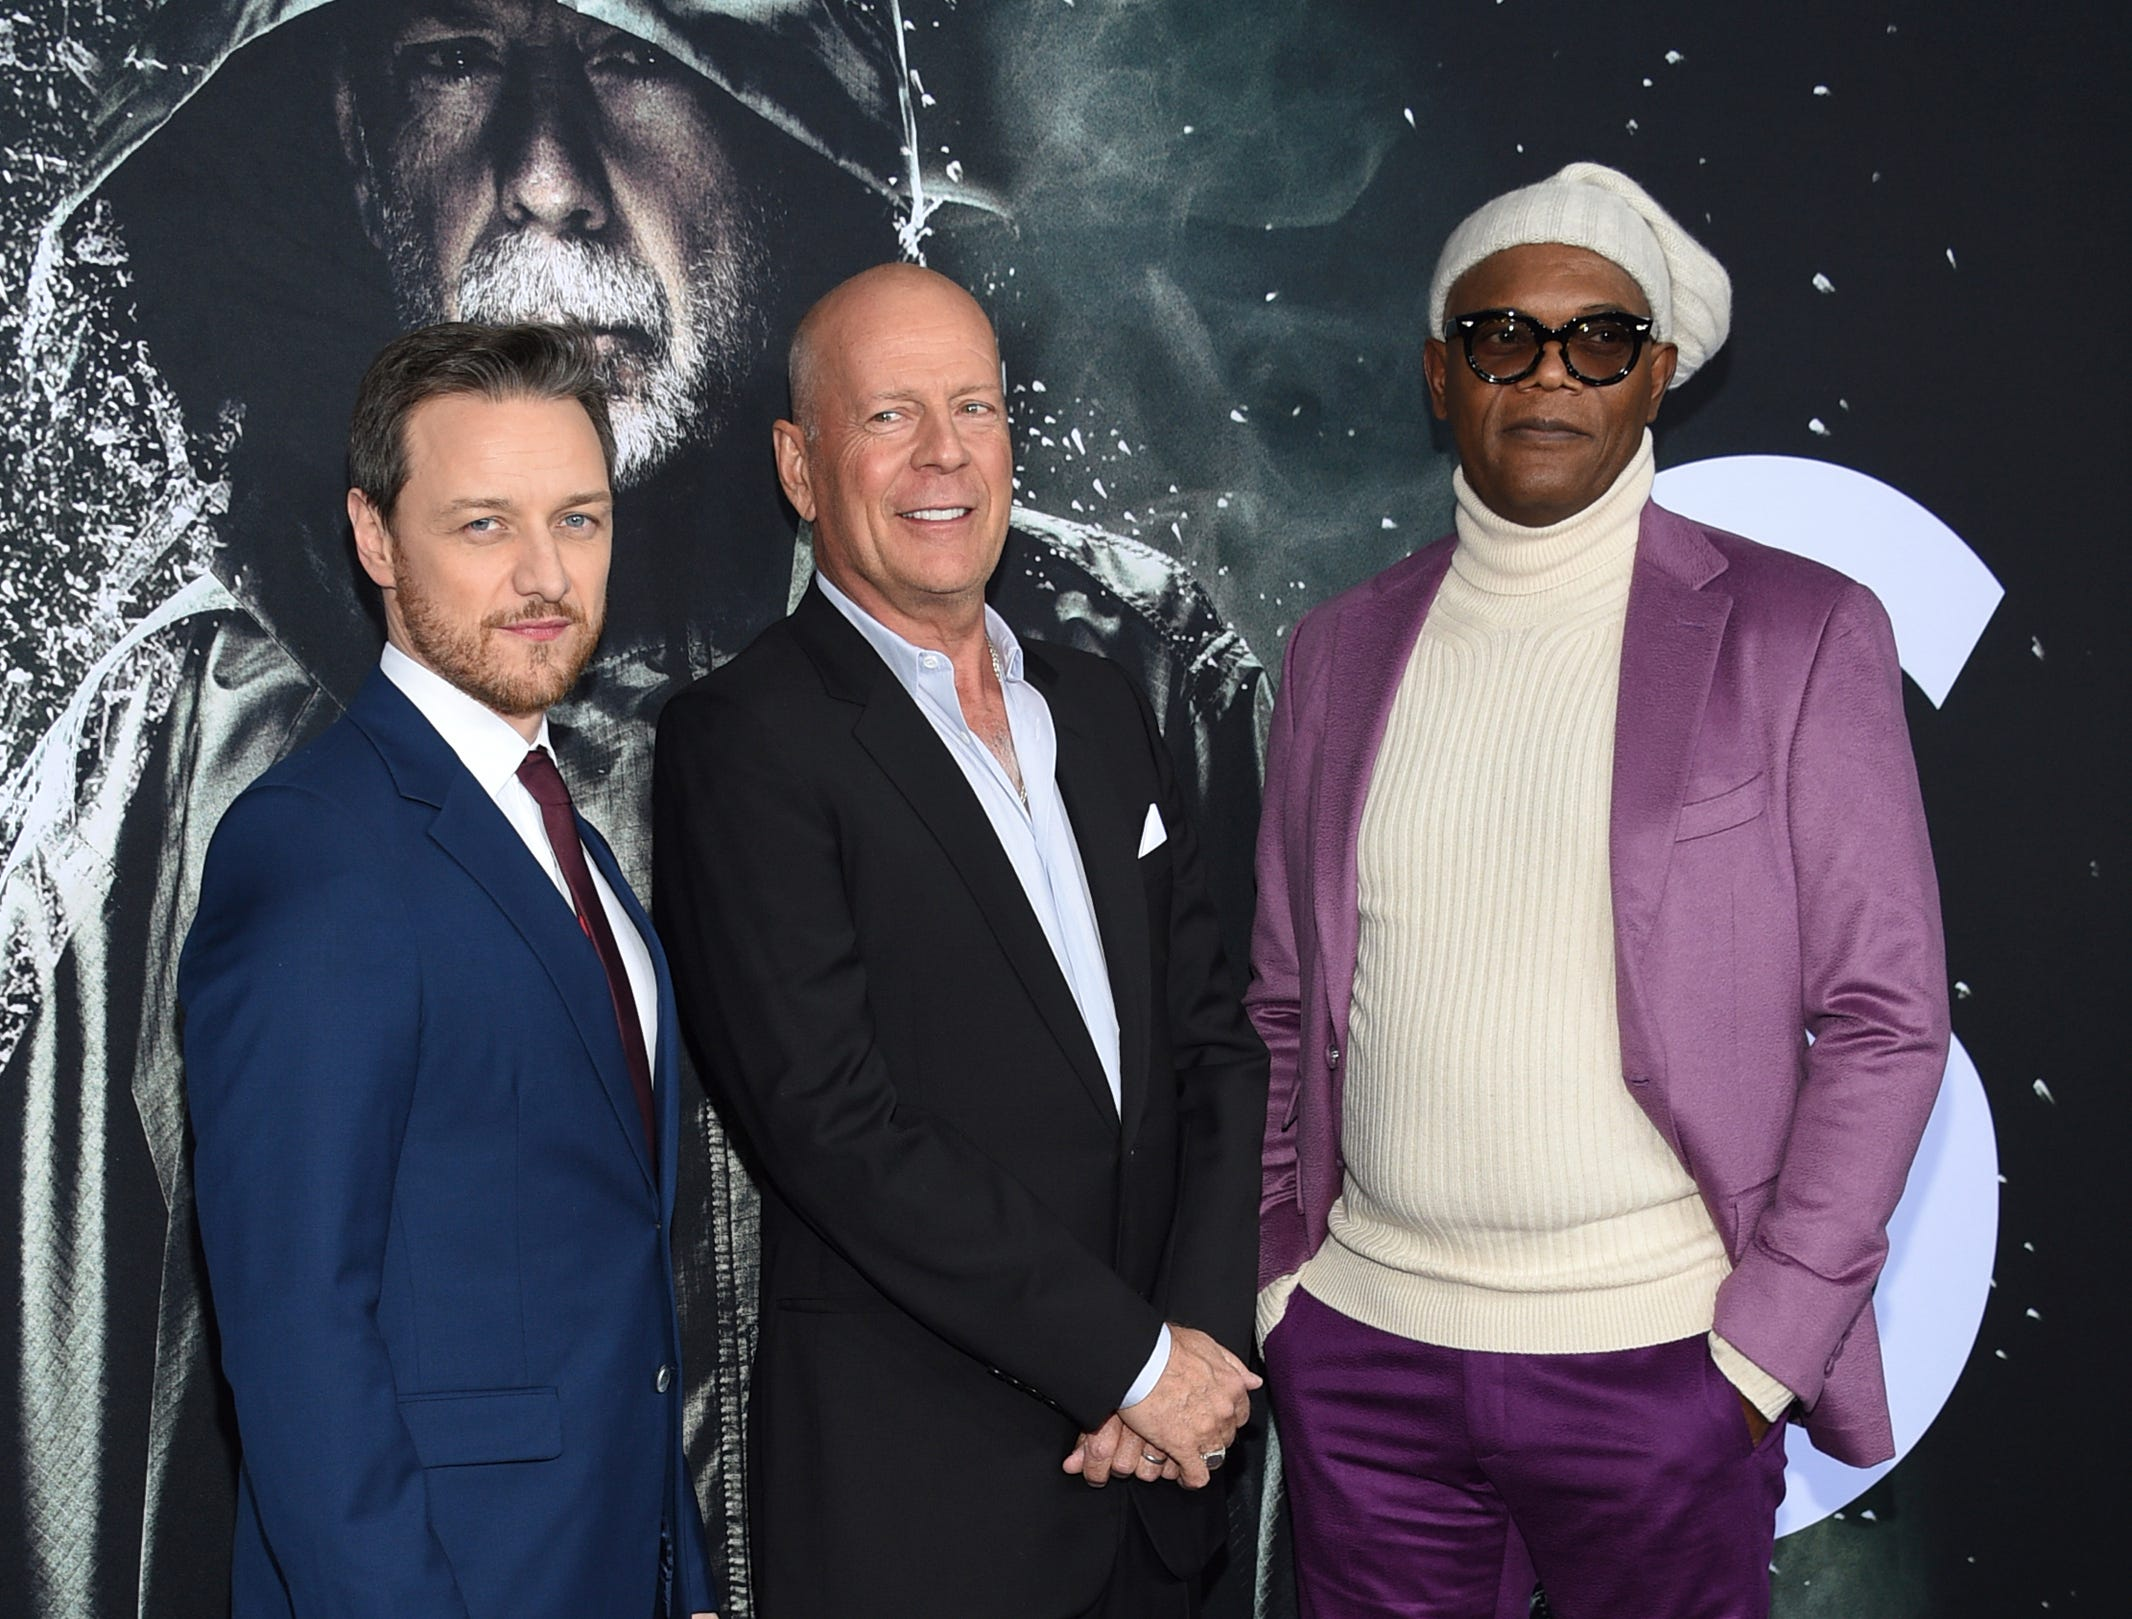 """James McAvoy, from left, Bruce Willis and Samuel L. Jackson attend the premiere of """"Glass"""" at the SVA Theatre on Tuesday, Jan. 15, 2019, in New York."""